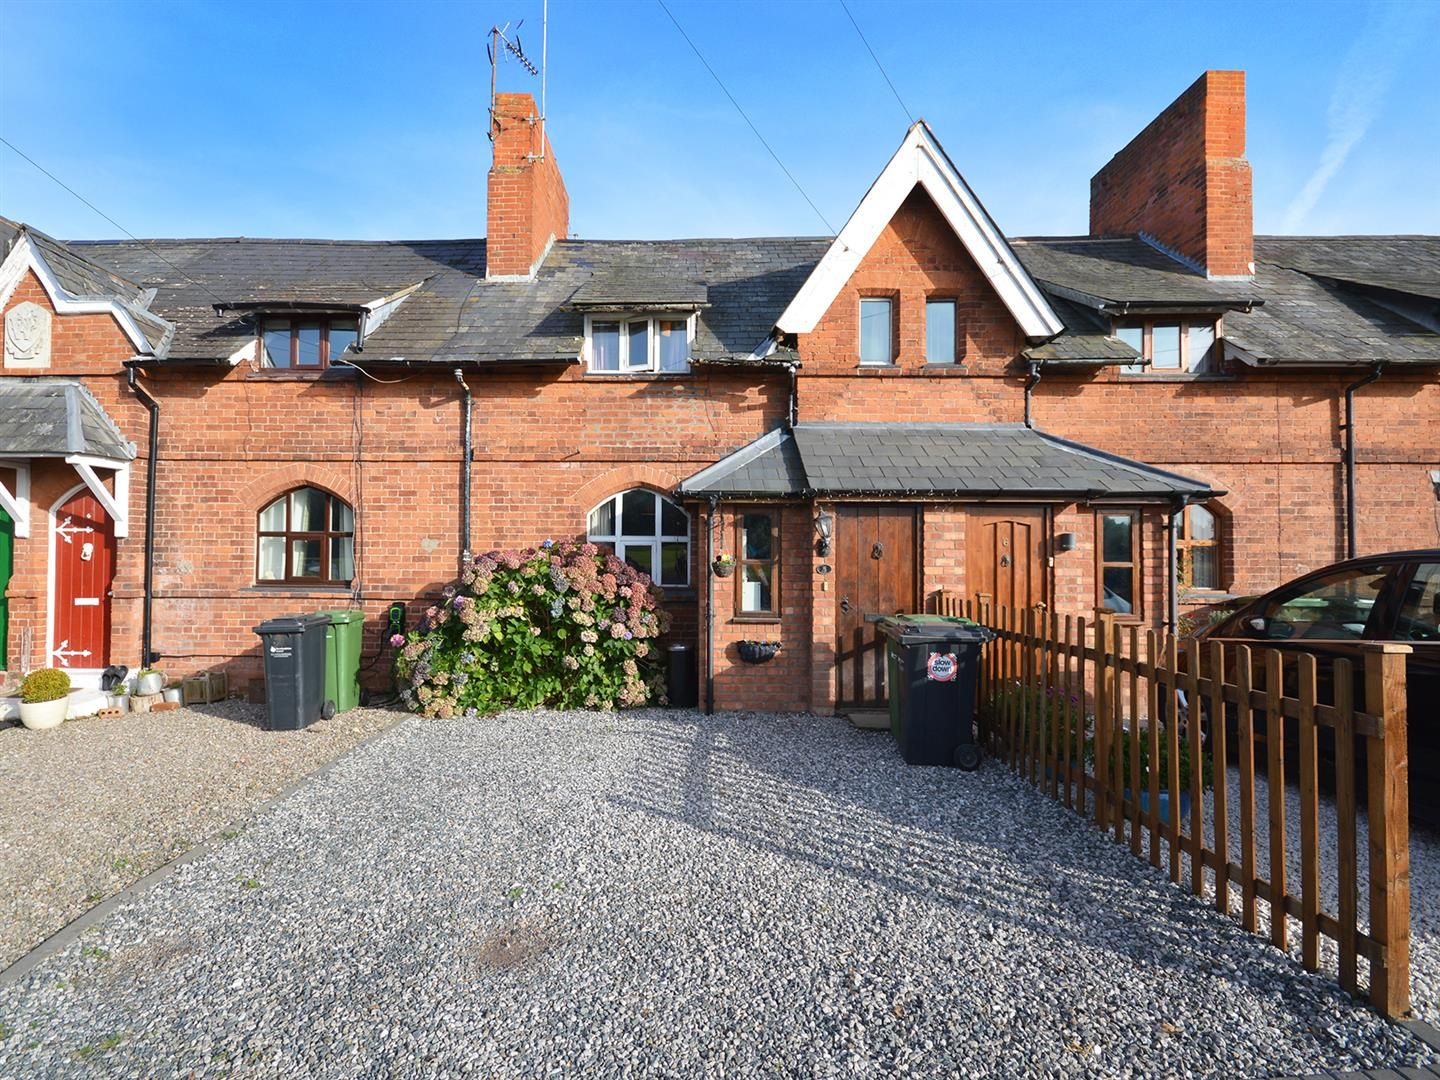 3 bed terraced for sale in Belmont, HR2